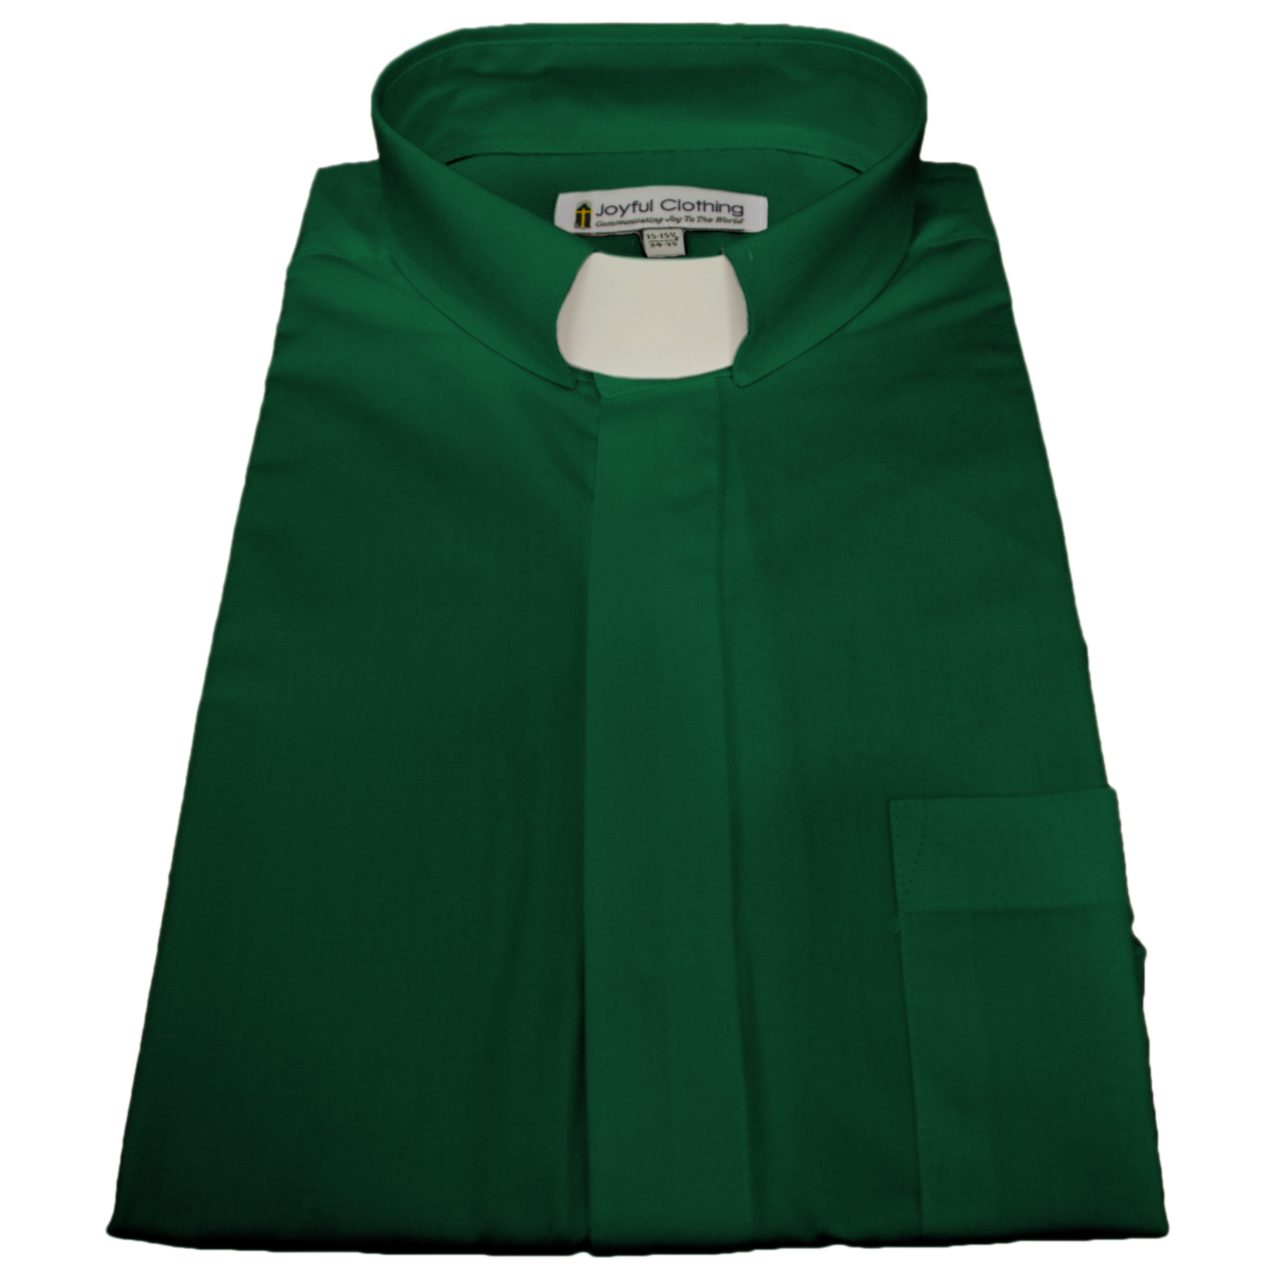 125. Men's Long-Sleeve Tab-Collar Clergy Shirt - Kelly Green